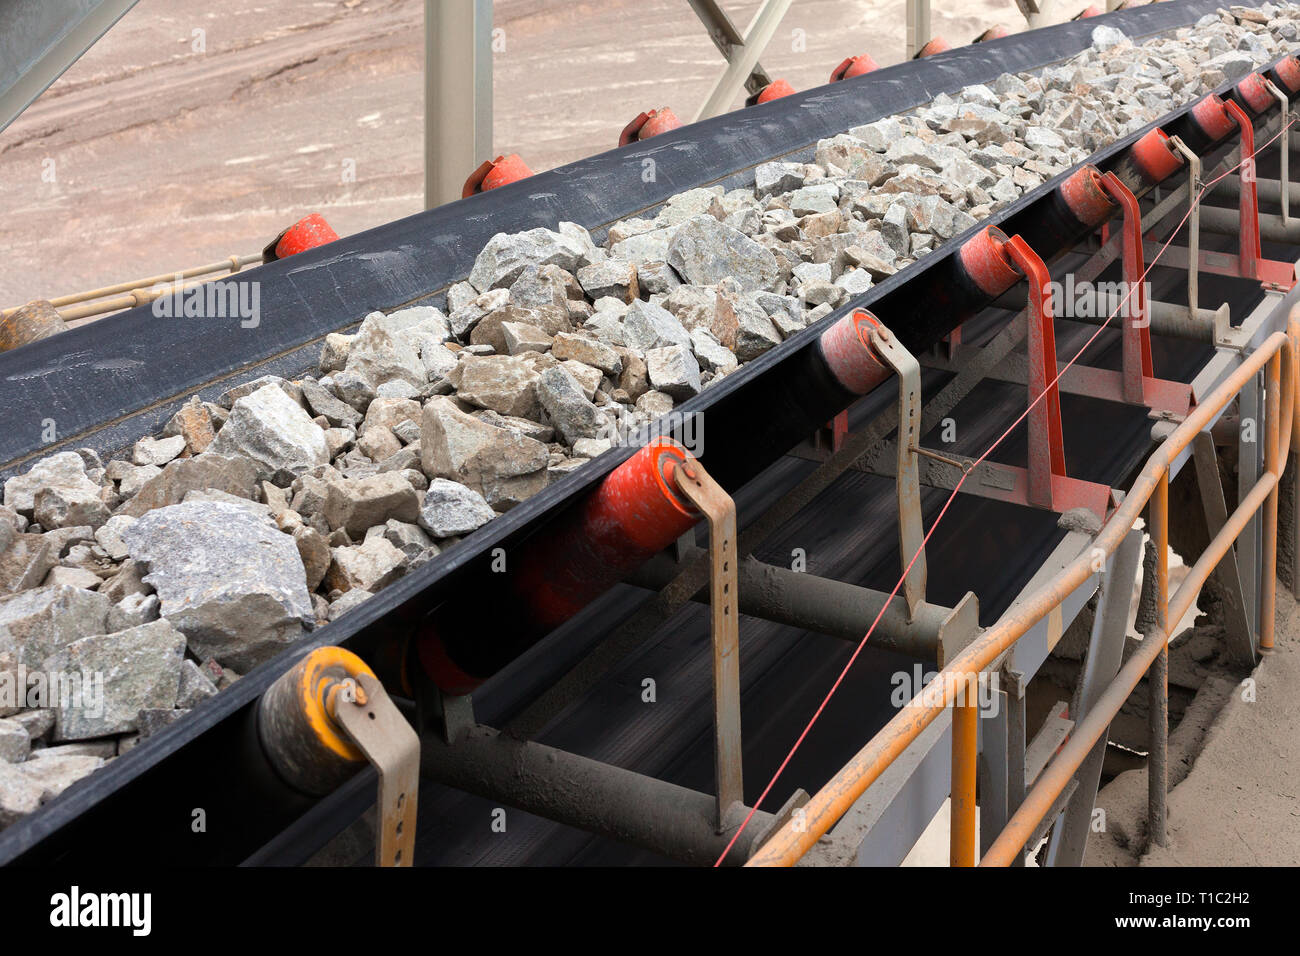 Raw Material on Conveyor Belt before being Crushed at Copper Mine in Northern Chile - Stock Image